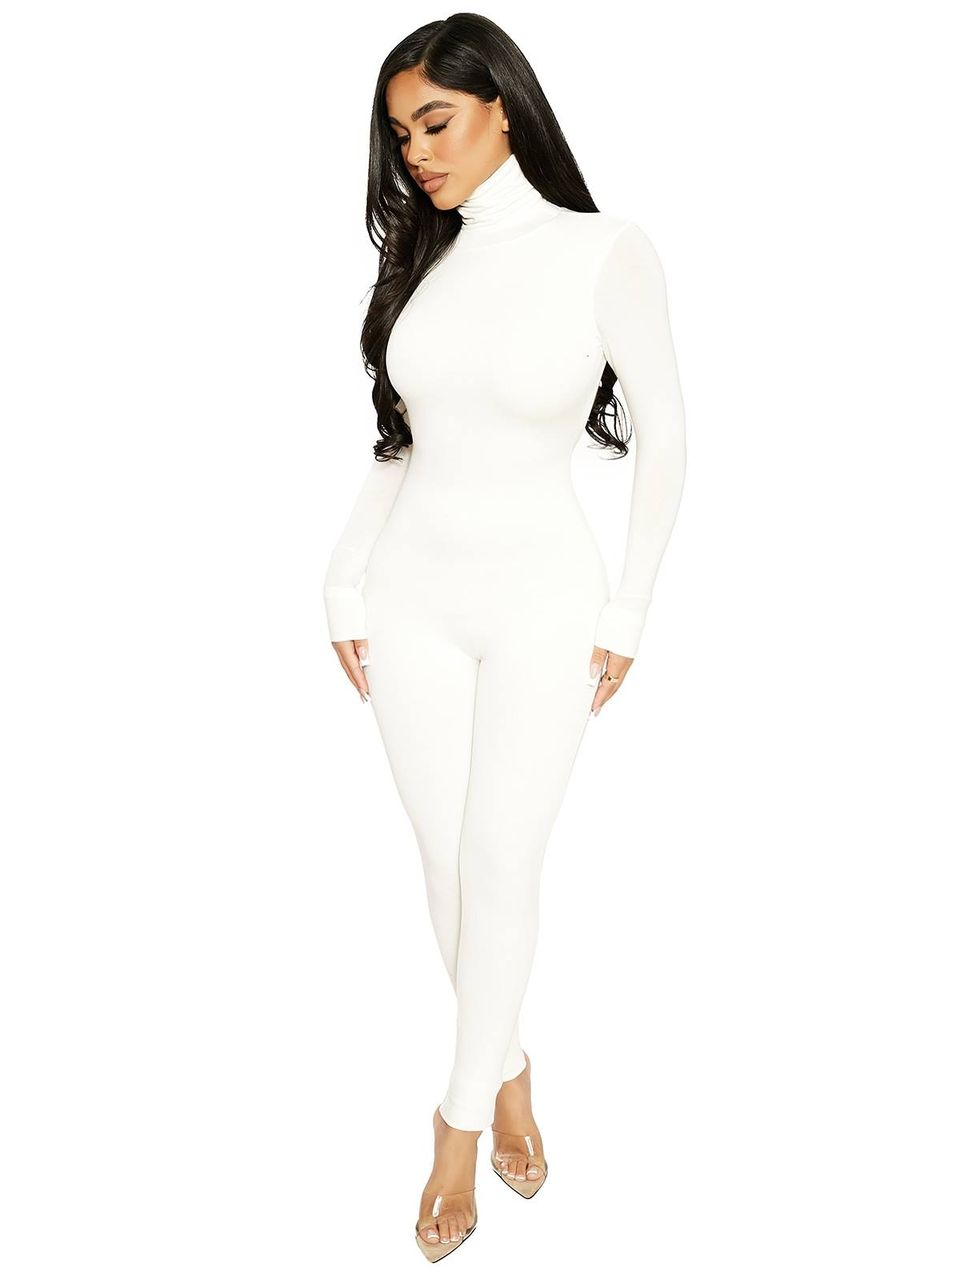 Naked Wardrobe - The NW Zip Me Up Romper (White,One Size)